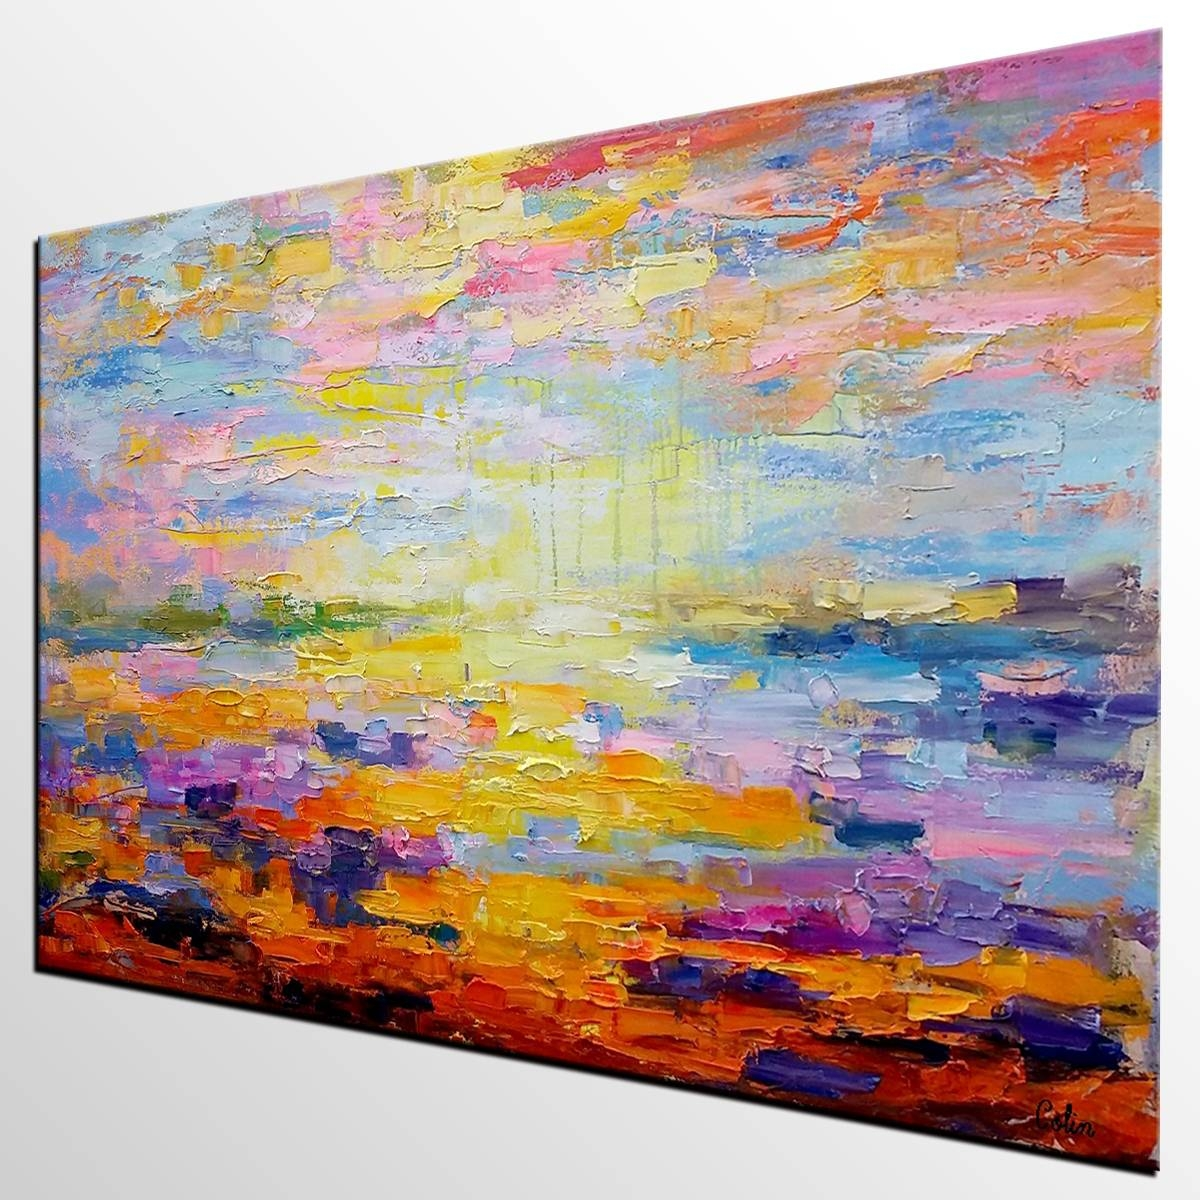 Canvas Art, Abstract Art, Original Wall Art, Landscape Painting In Newest Oil Painting Wall Art On Canvas (View 18 of 20)